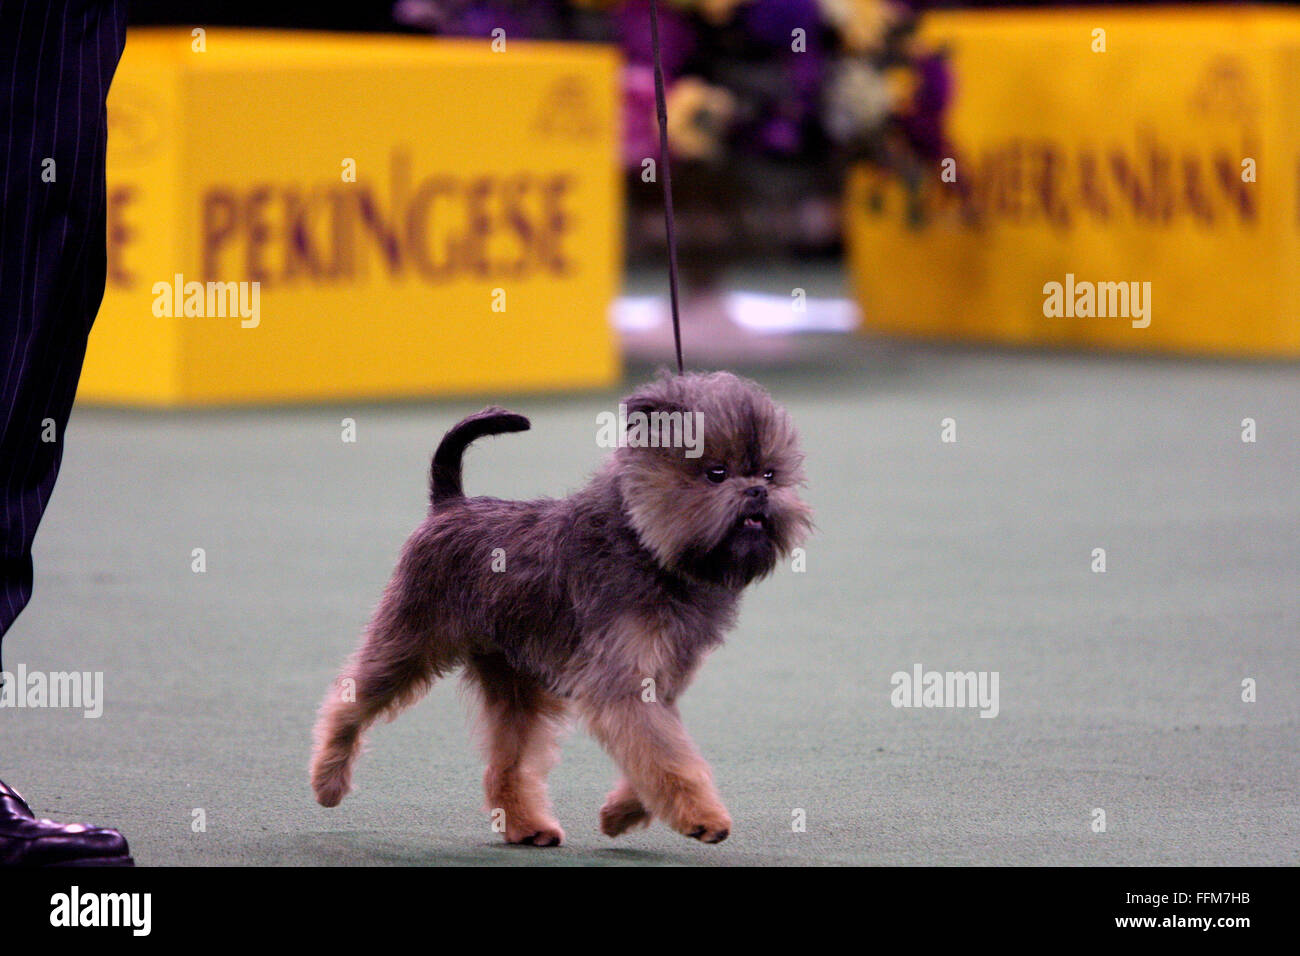 New York, USA. 15th February, 2016. An Affenpincher, during the Toy group competition at the Westminster Dog Show - Stock Image